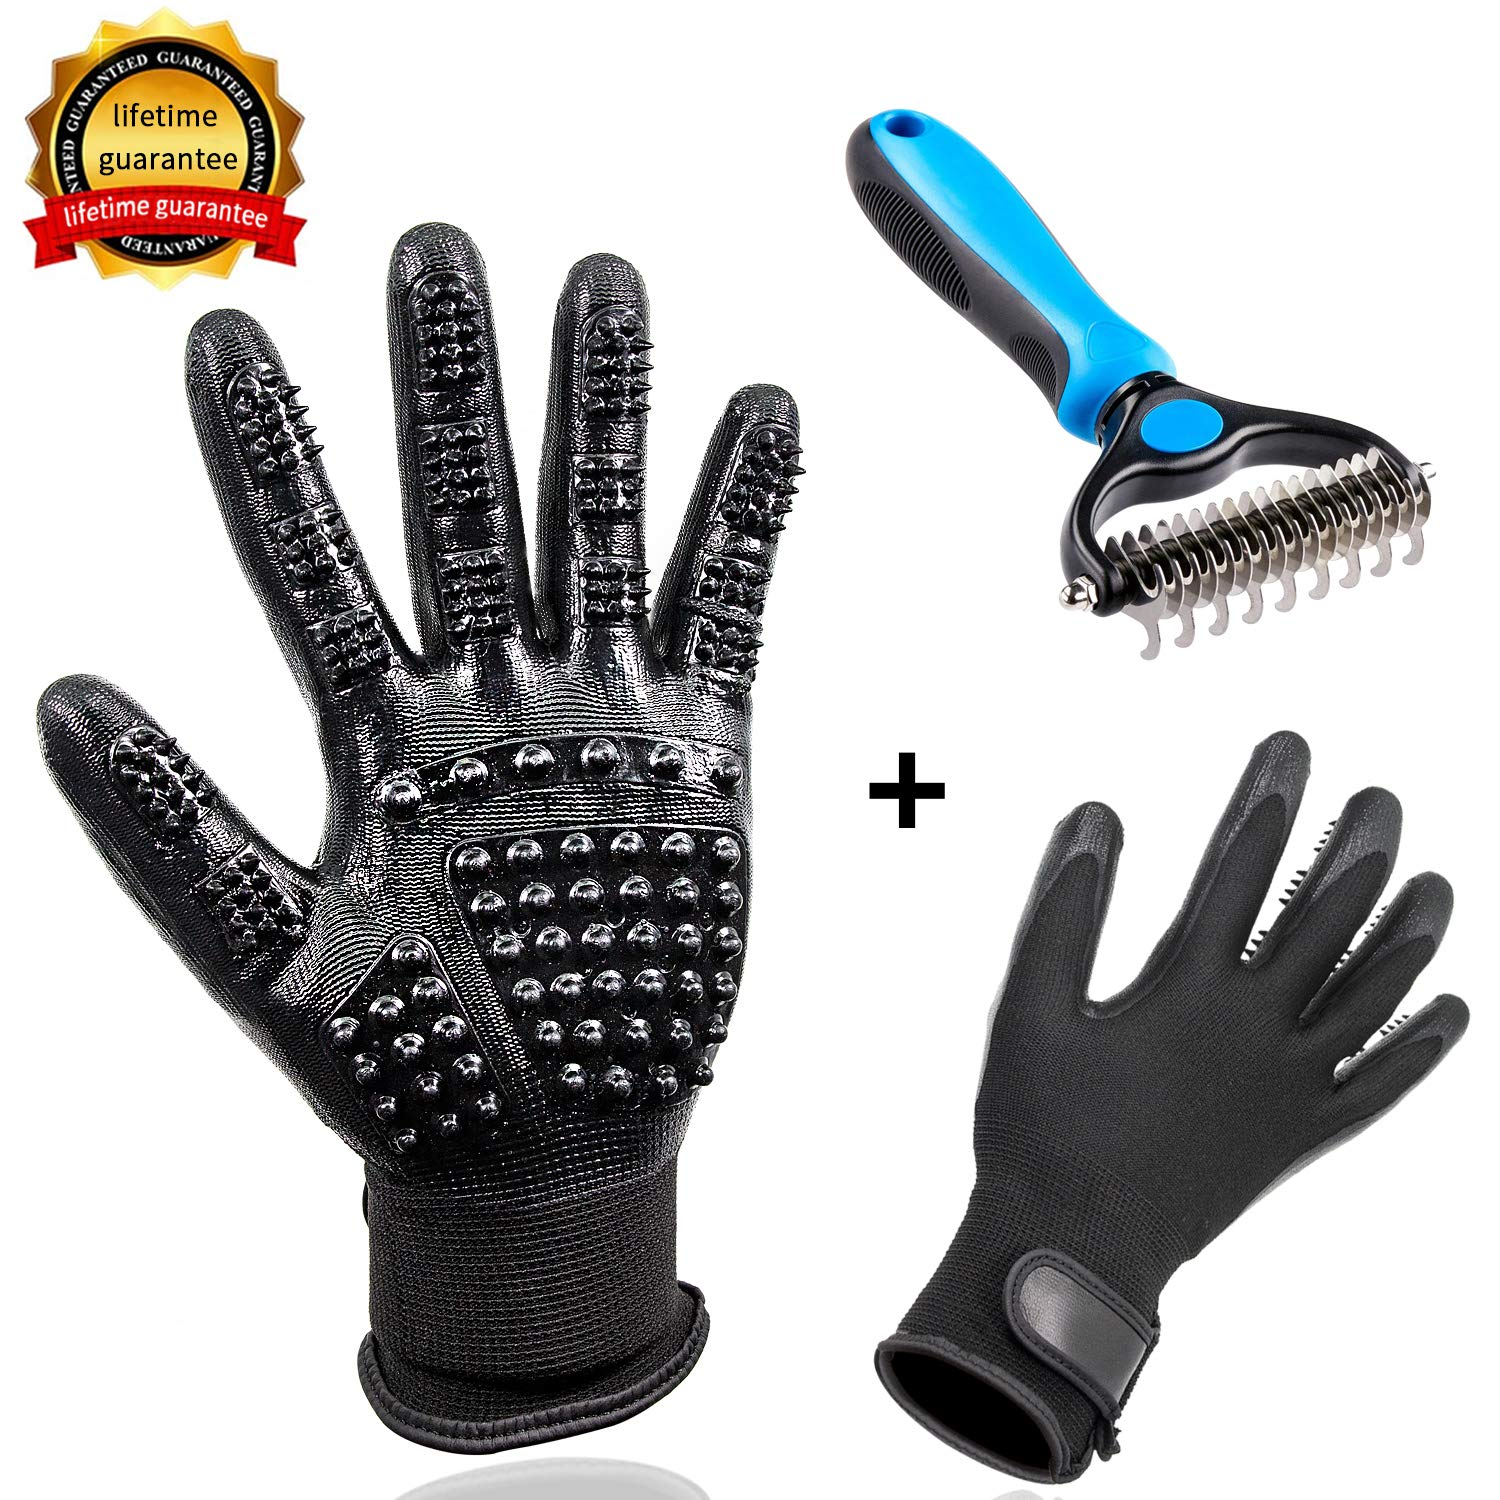 ldcx Massage Gloves Pet Grooming Tool Dematting Comb/Grooming Glove Set, 2 Sided Undercoat Grooming Rake Gentle De-Shedding Brush for Dogs Cats Horses with Long Short Fur, Efficient Pet Hair Remover by ldcx